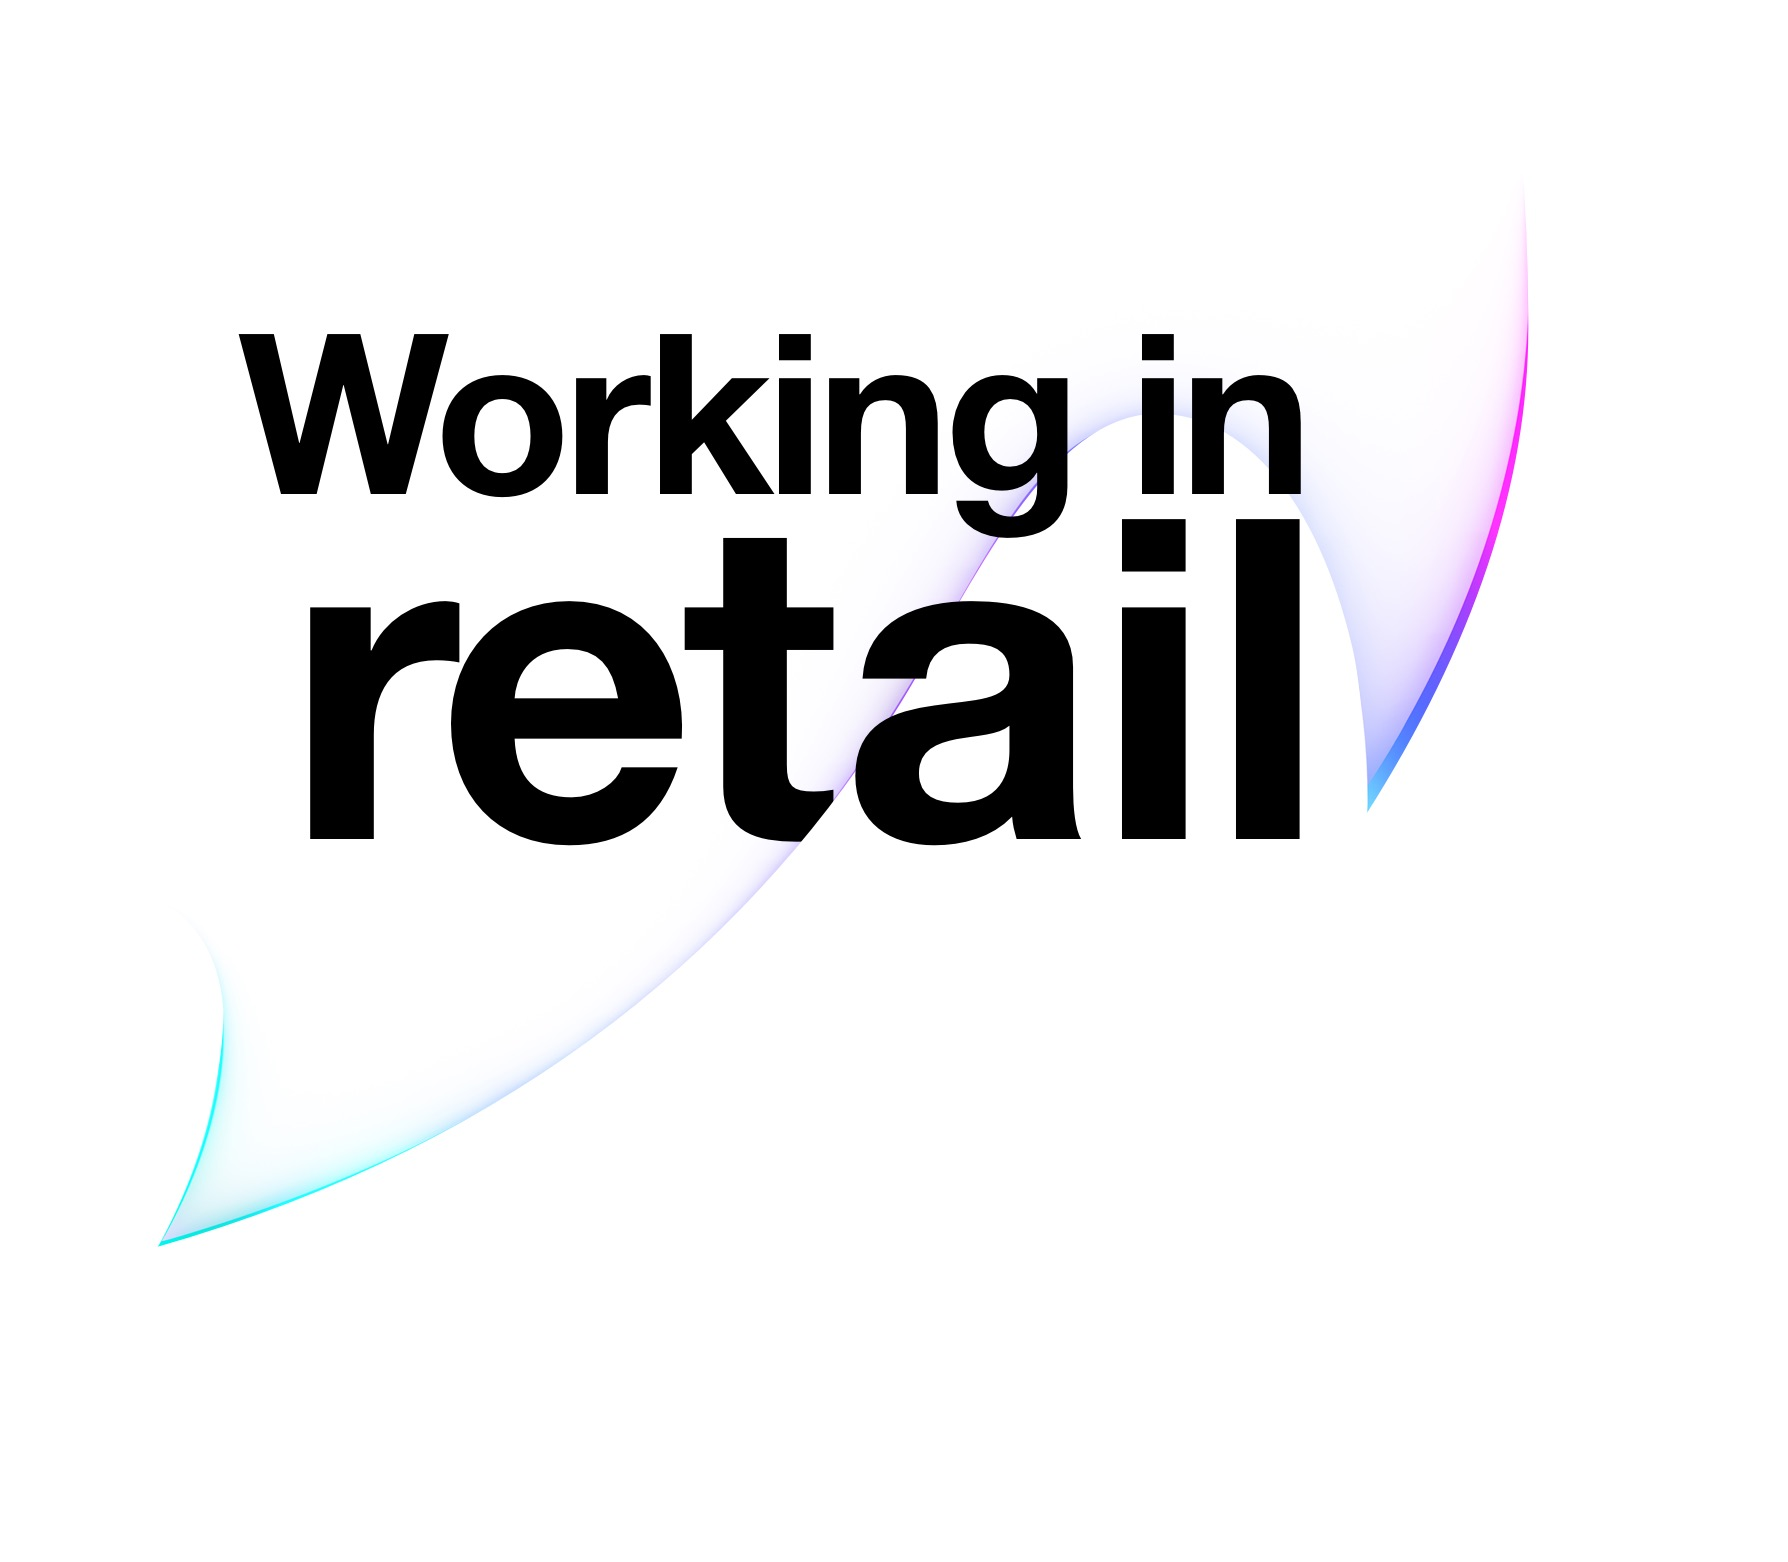 Working in Retail main image